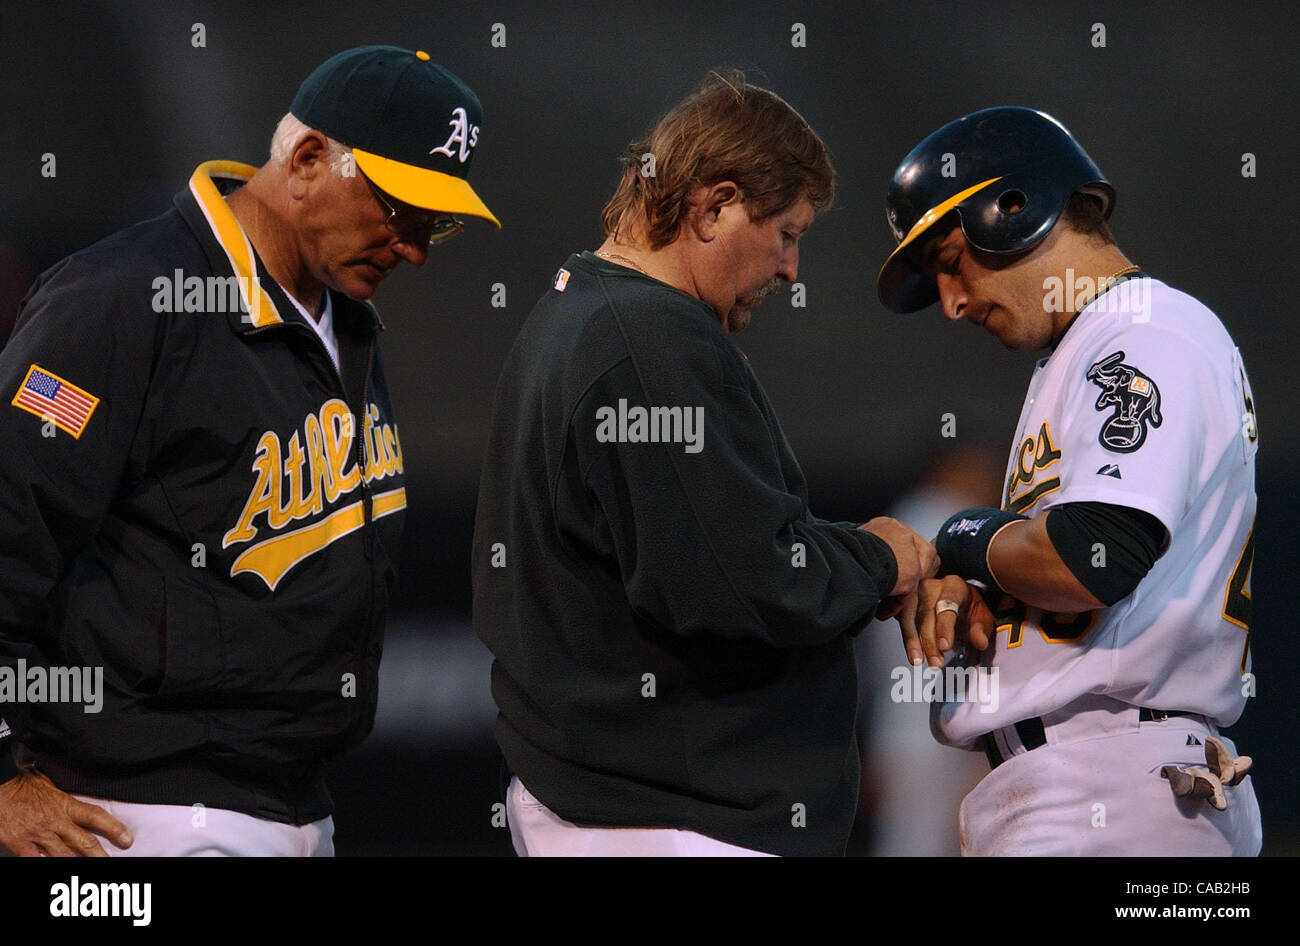 Oakland Athletics Marco Scutaro, #49, is examined by trainer Larry ...